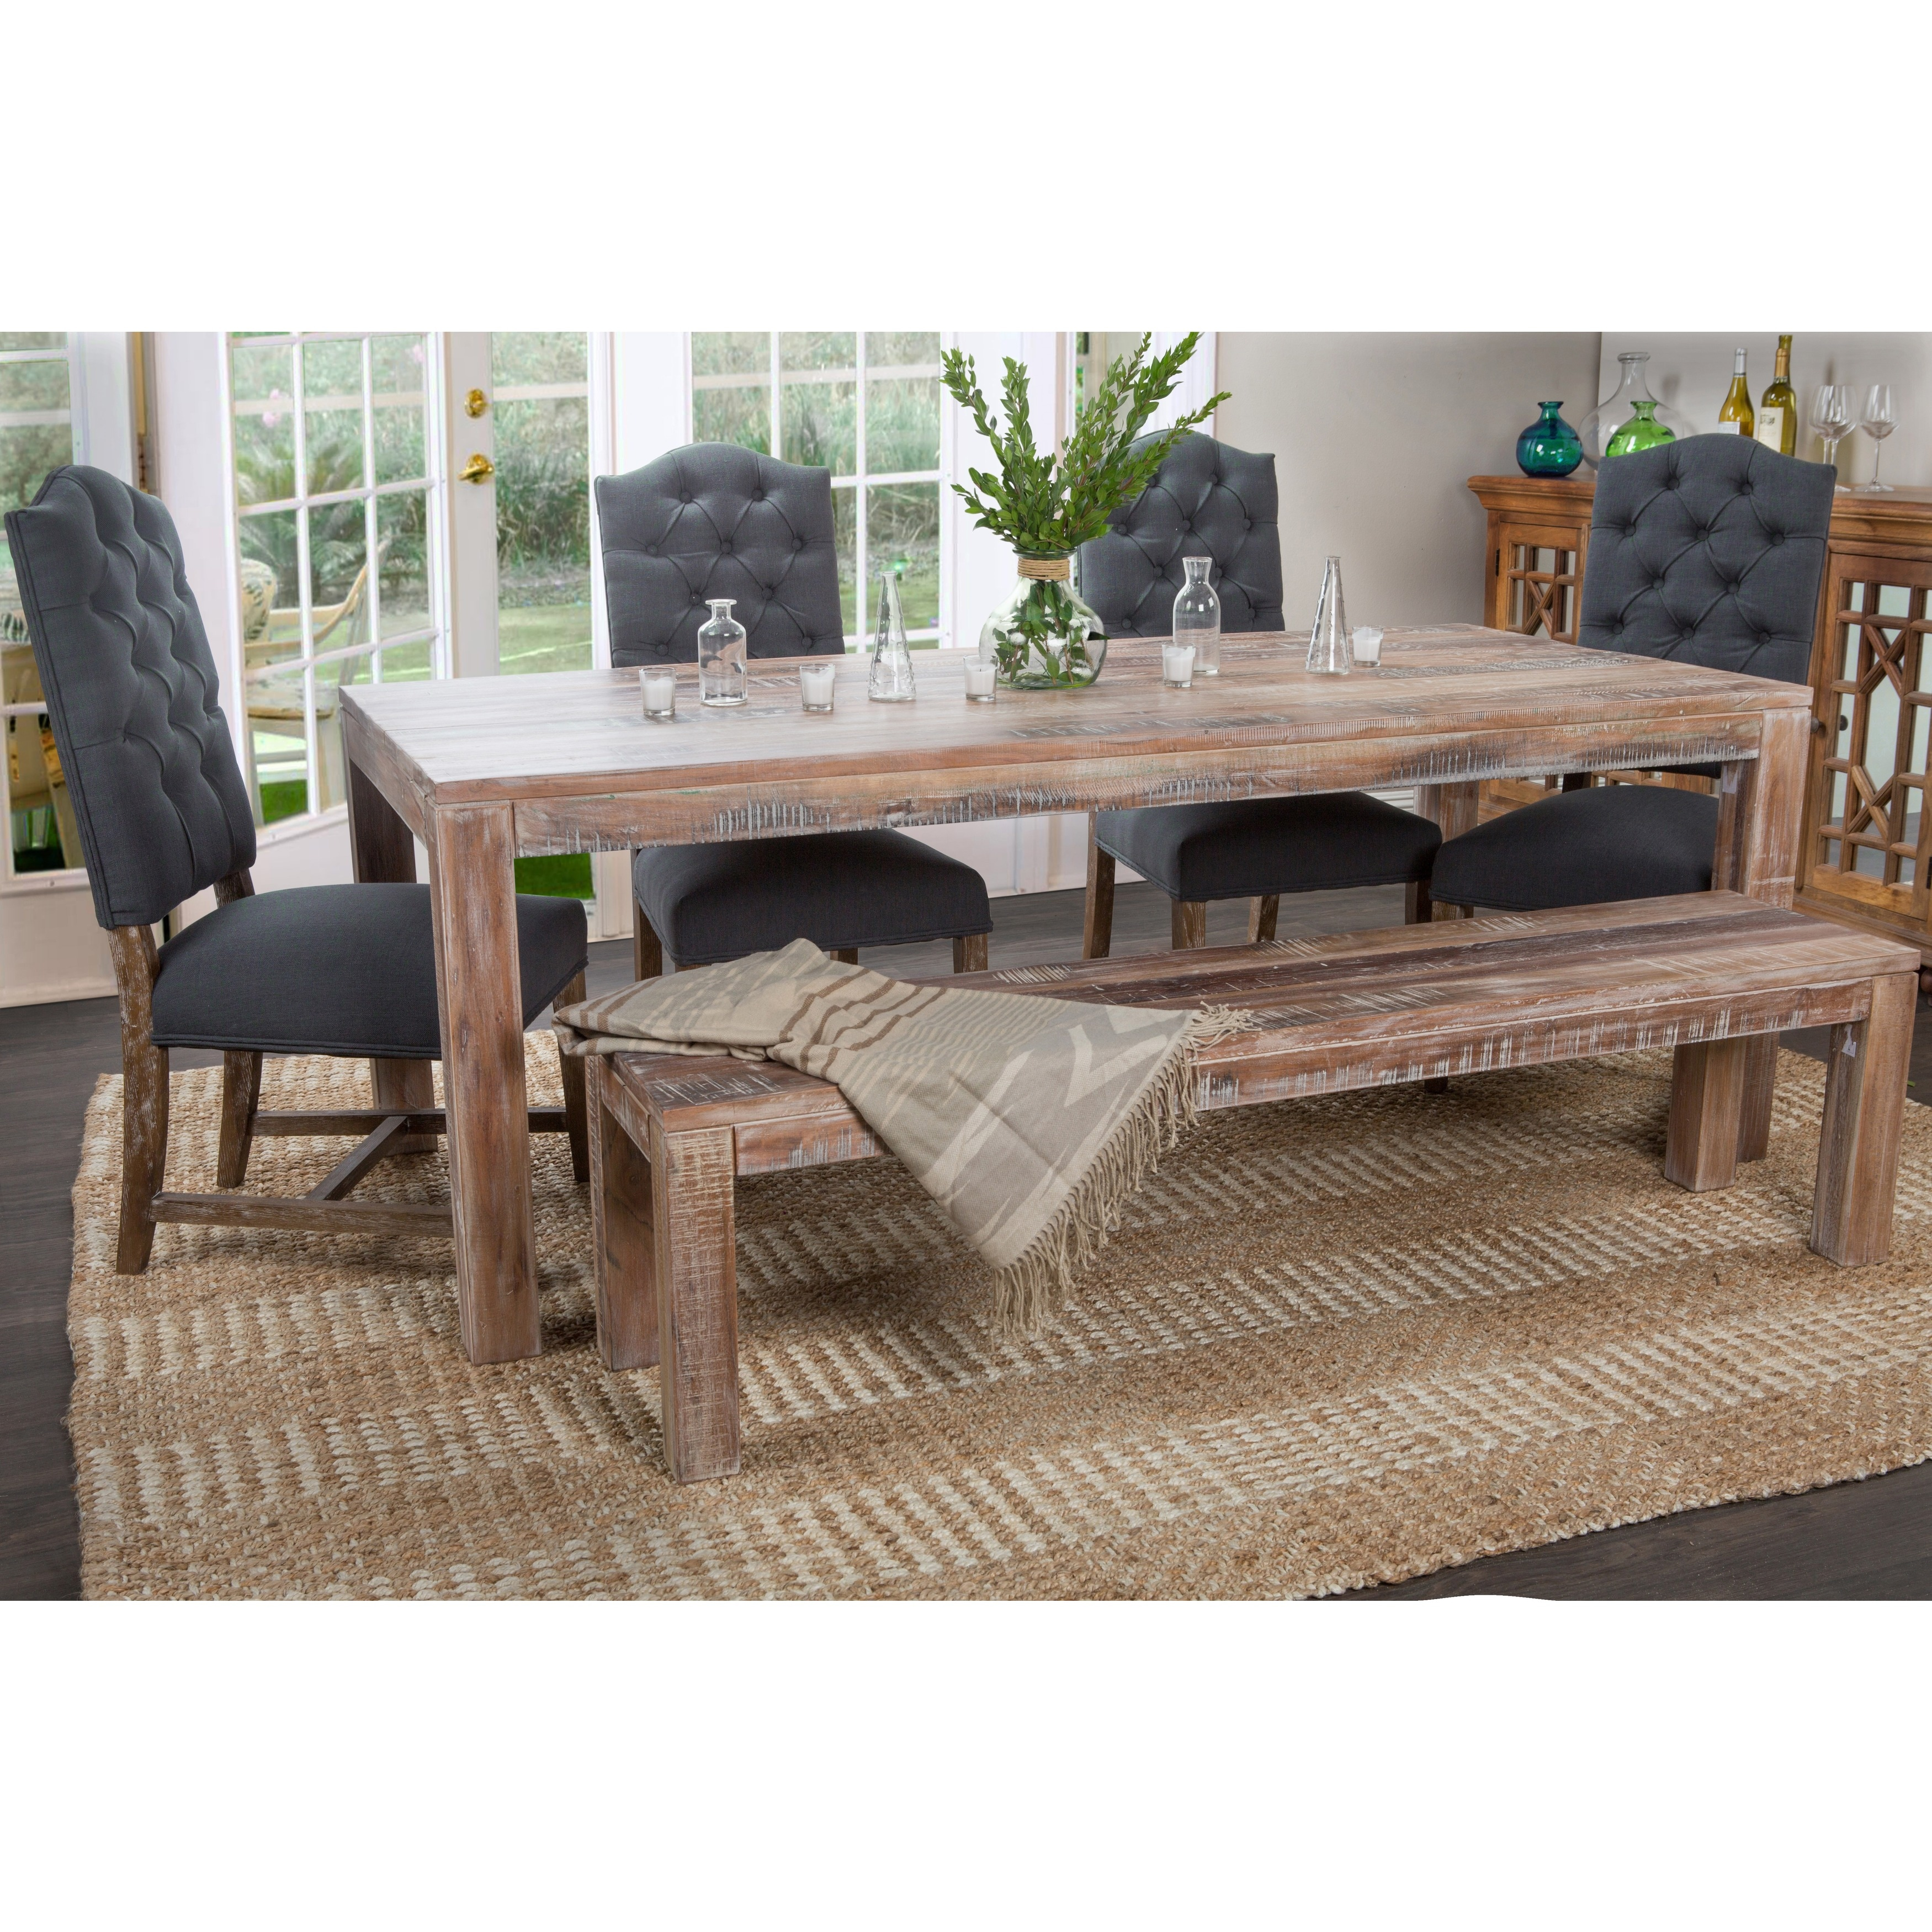 Lime Washed Farmhouse Tables And Benches Bespoke Sizes: Shop Carbon Loft Bell Reclaimed Wood 82-inch Dining Table